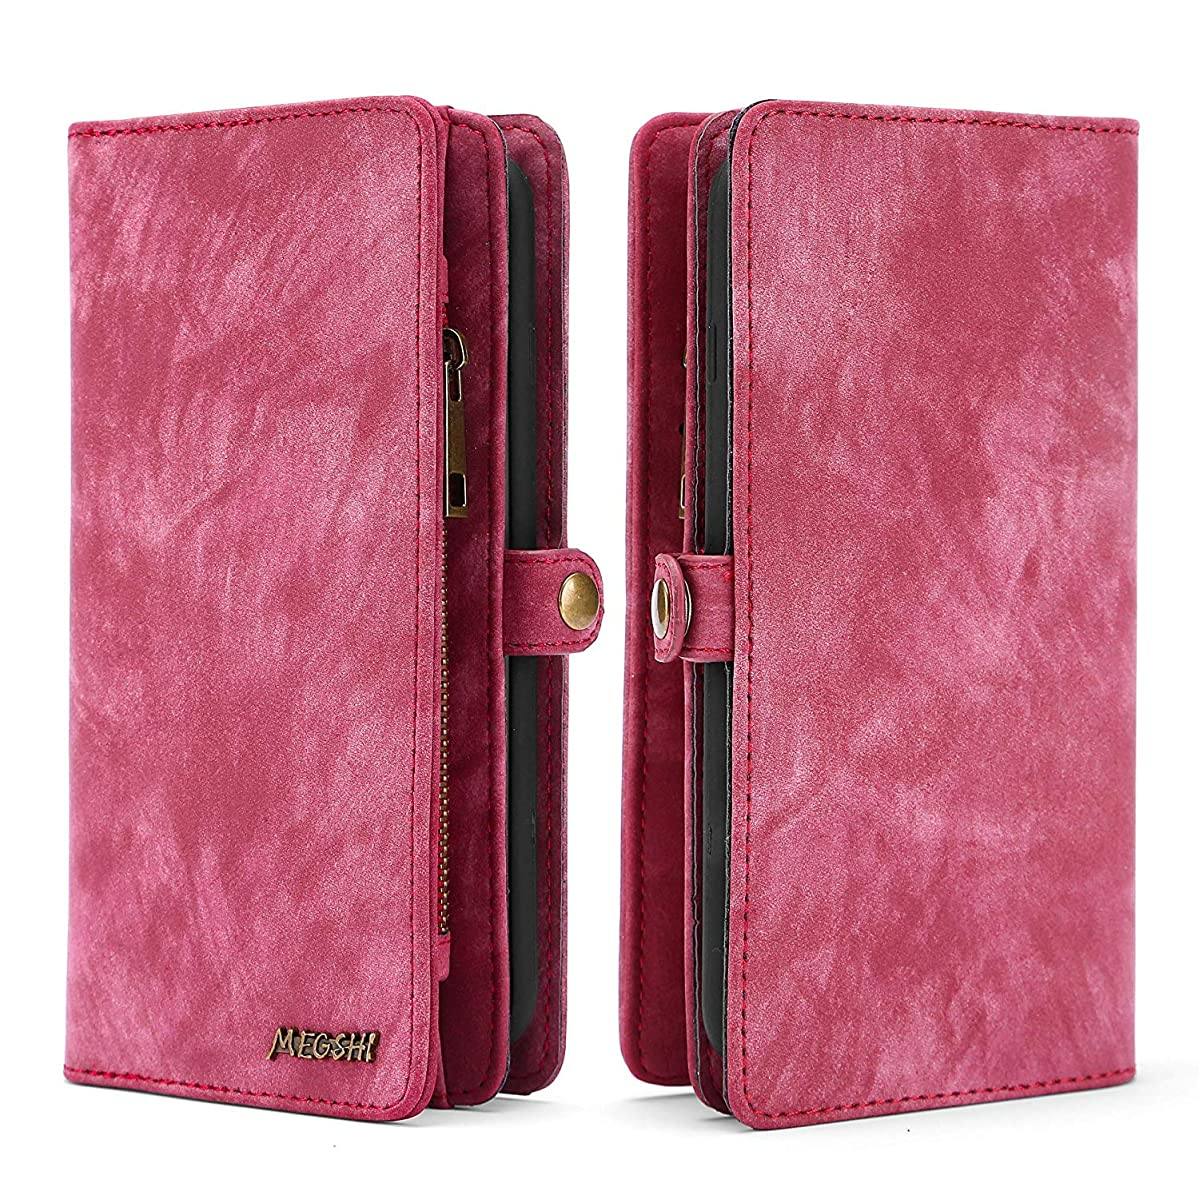 Spritech OnePlus 6T Wallet Case,Handmade Leather Large Capacity Detachable [Scratch Resistant] Zipper Wallet Cover with Credit Card Holder for OnePlus 6T (2018)